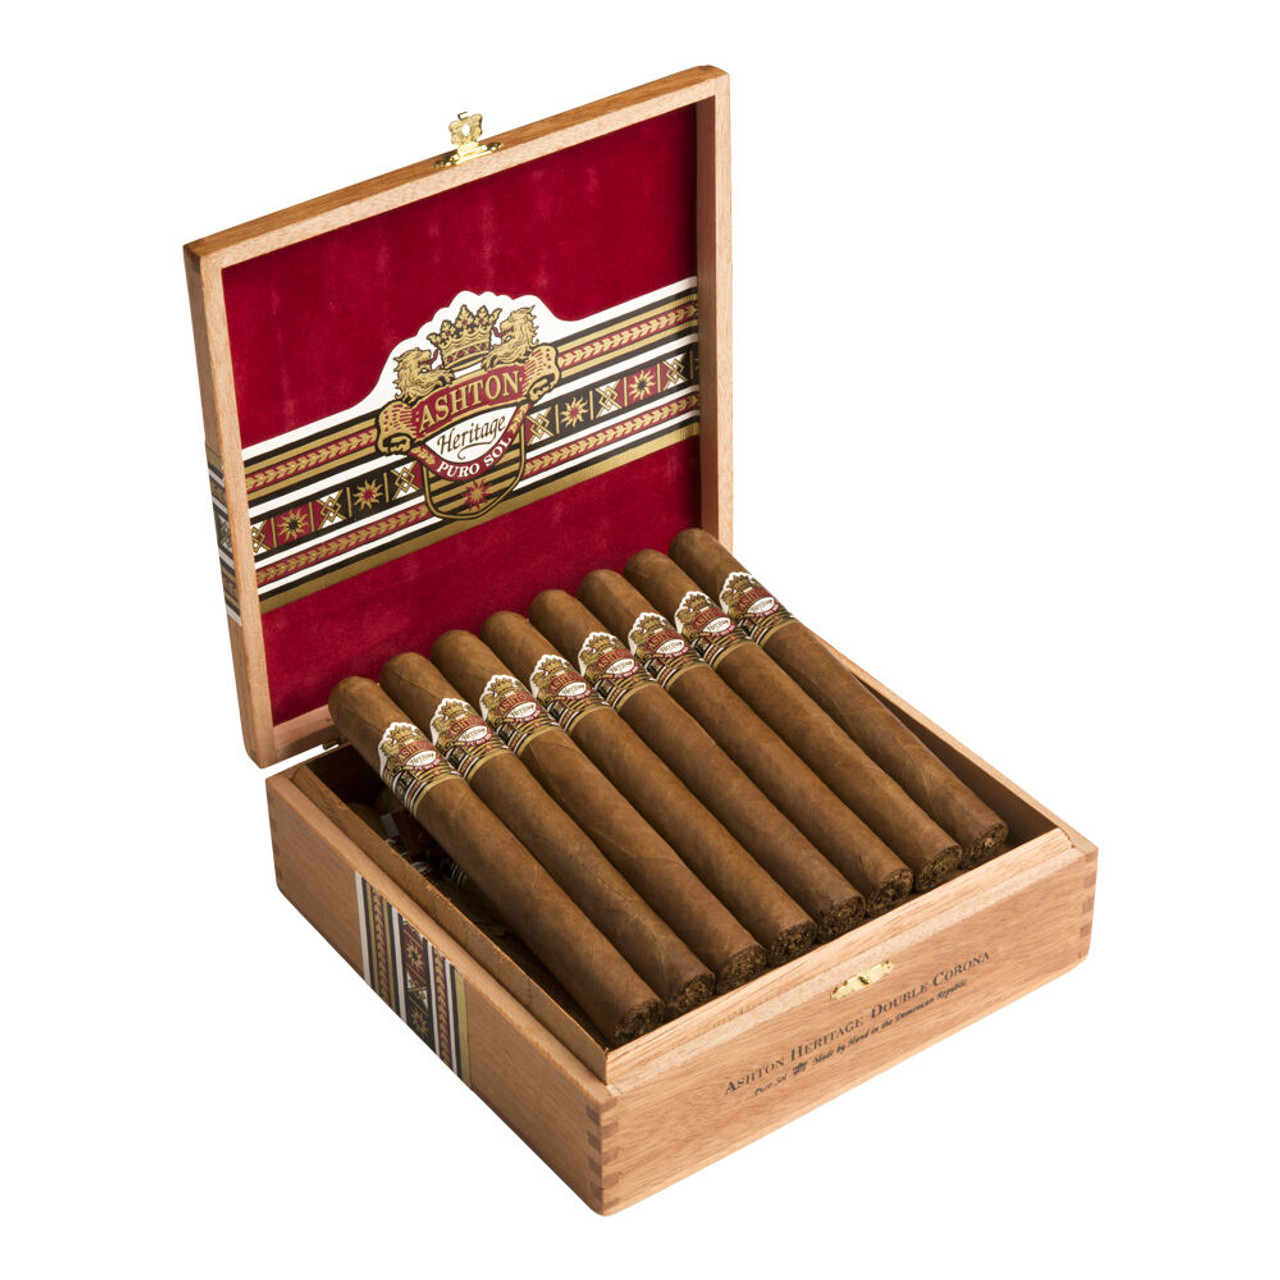 Ashton Heritage Puro Sol Churchill Cigars - 6.75 x 48 (Box of 25)